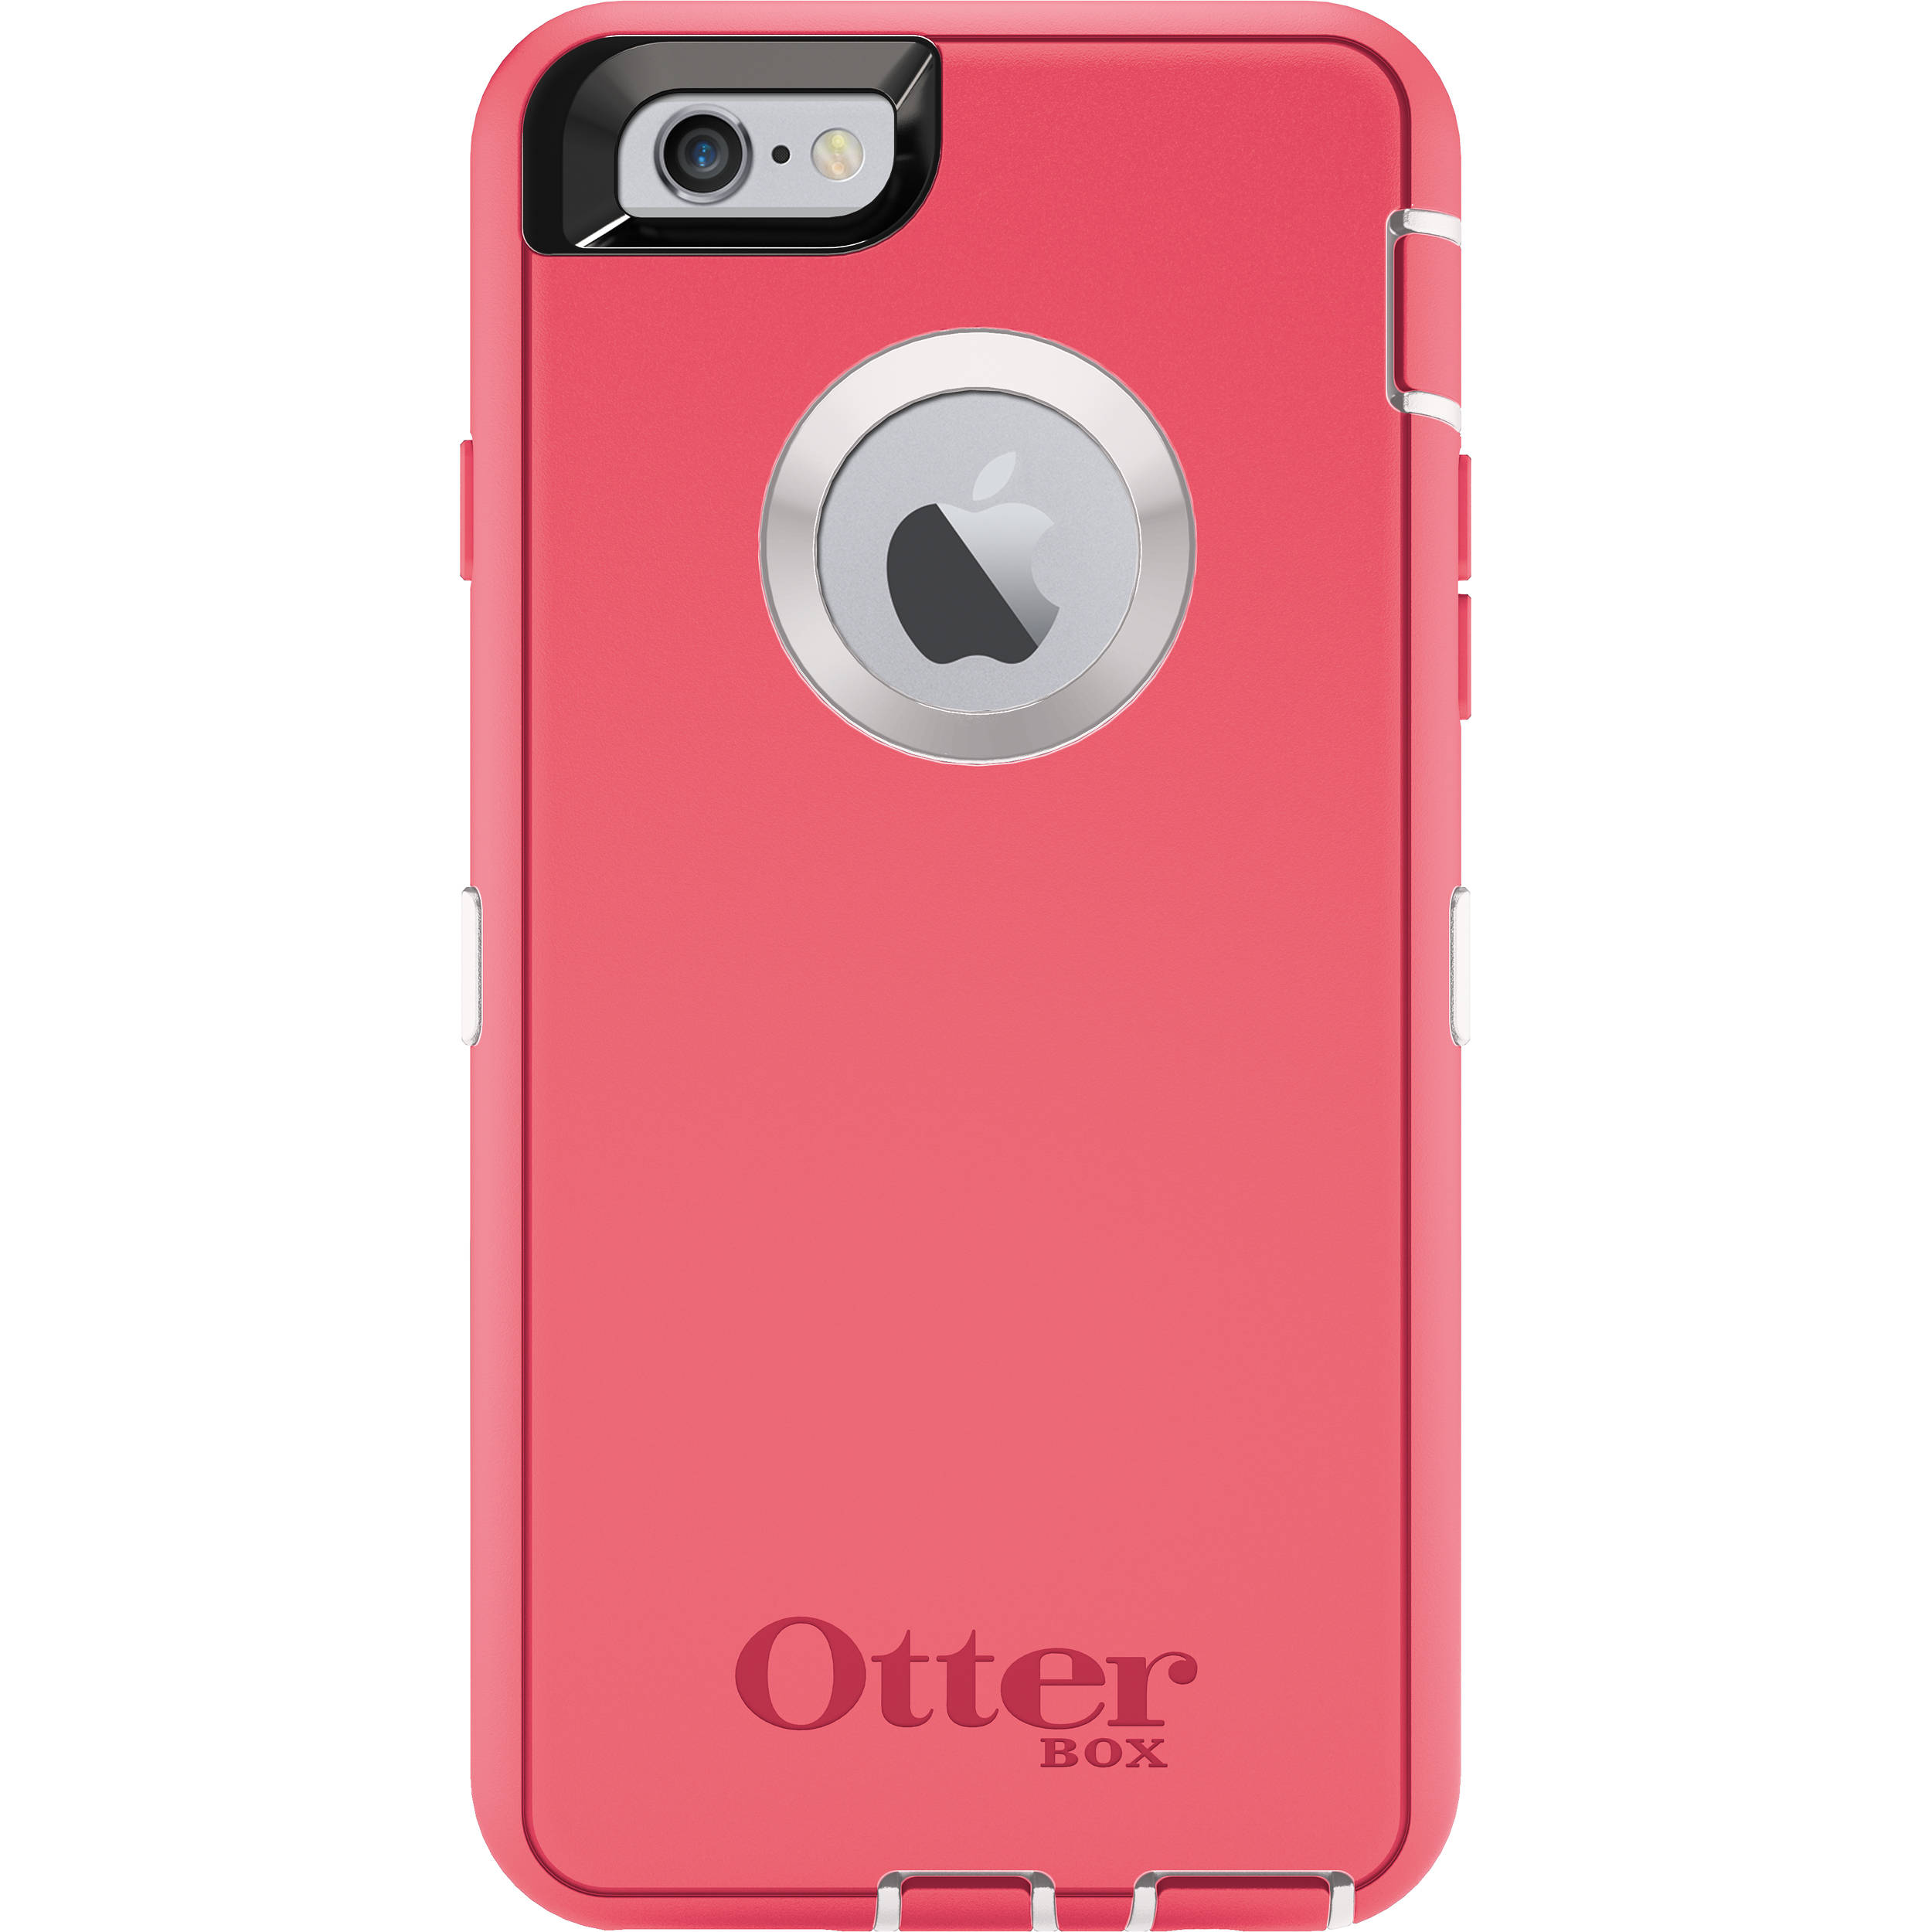 OtterBox Defender Series Case for iPhone 6 (Neon Rose)